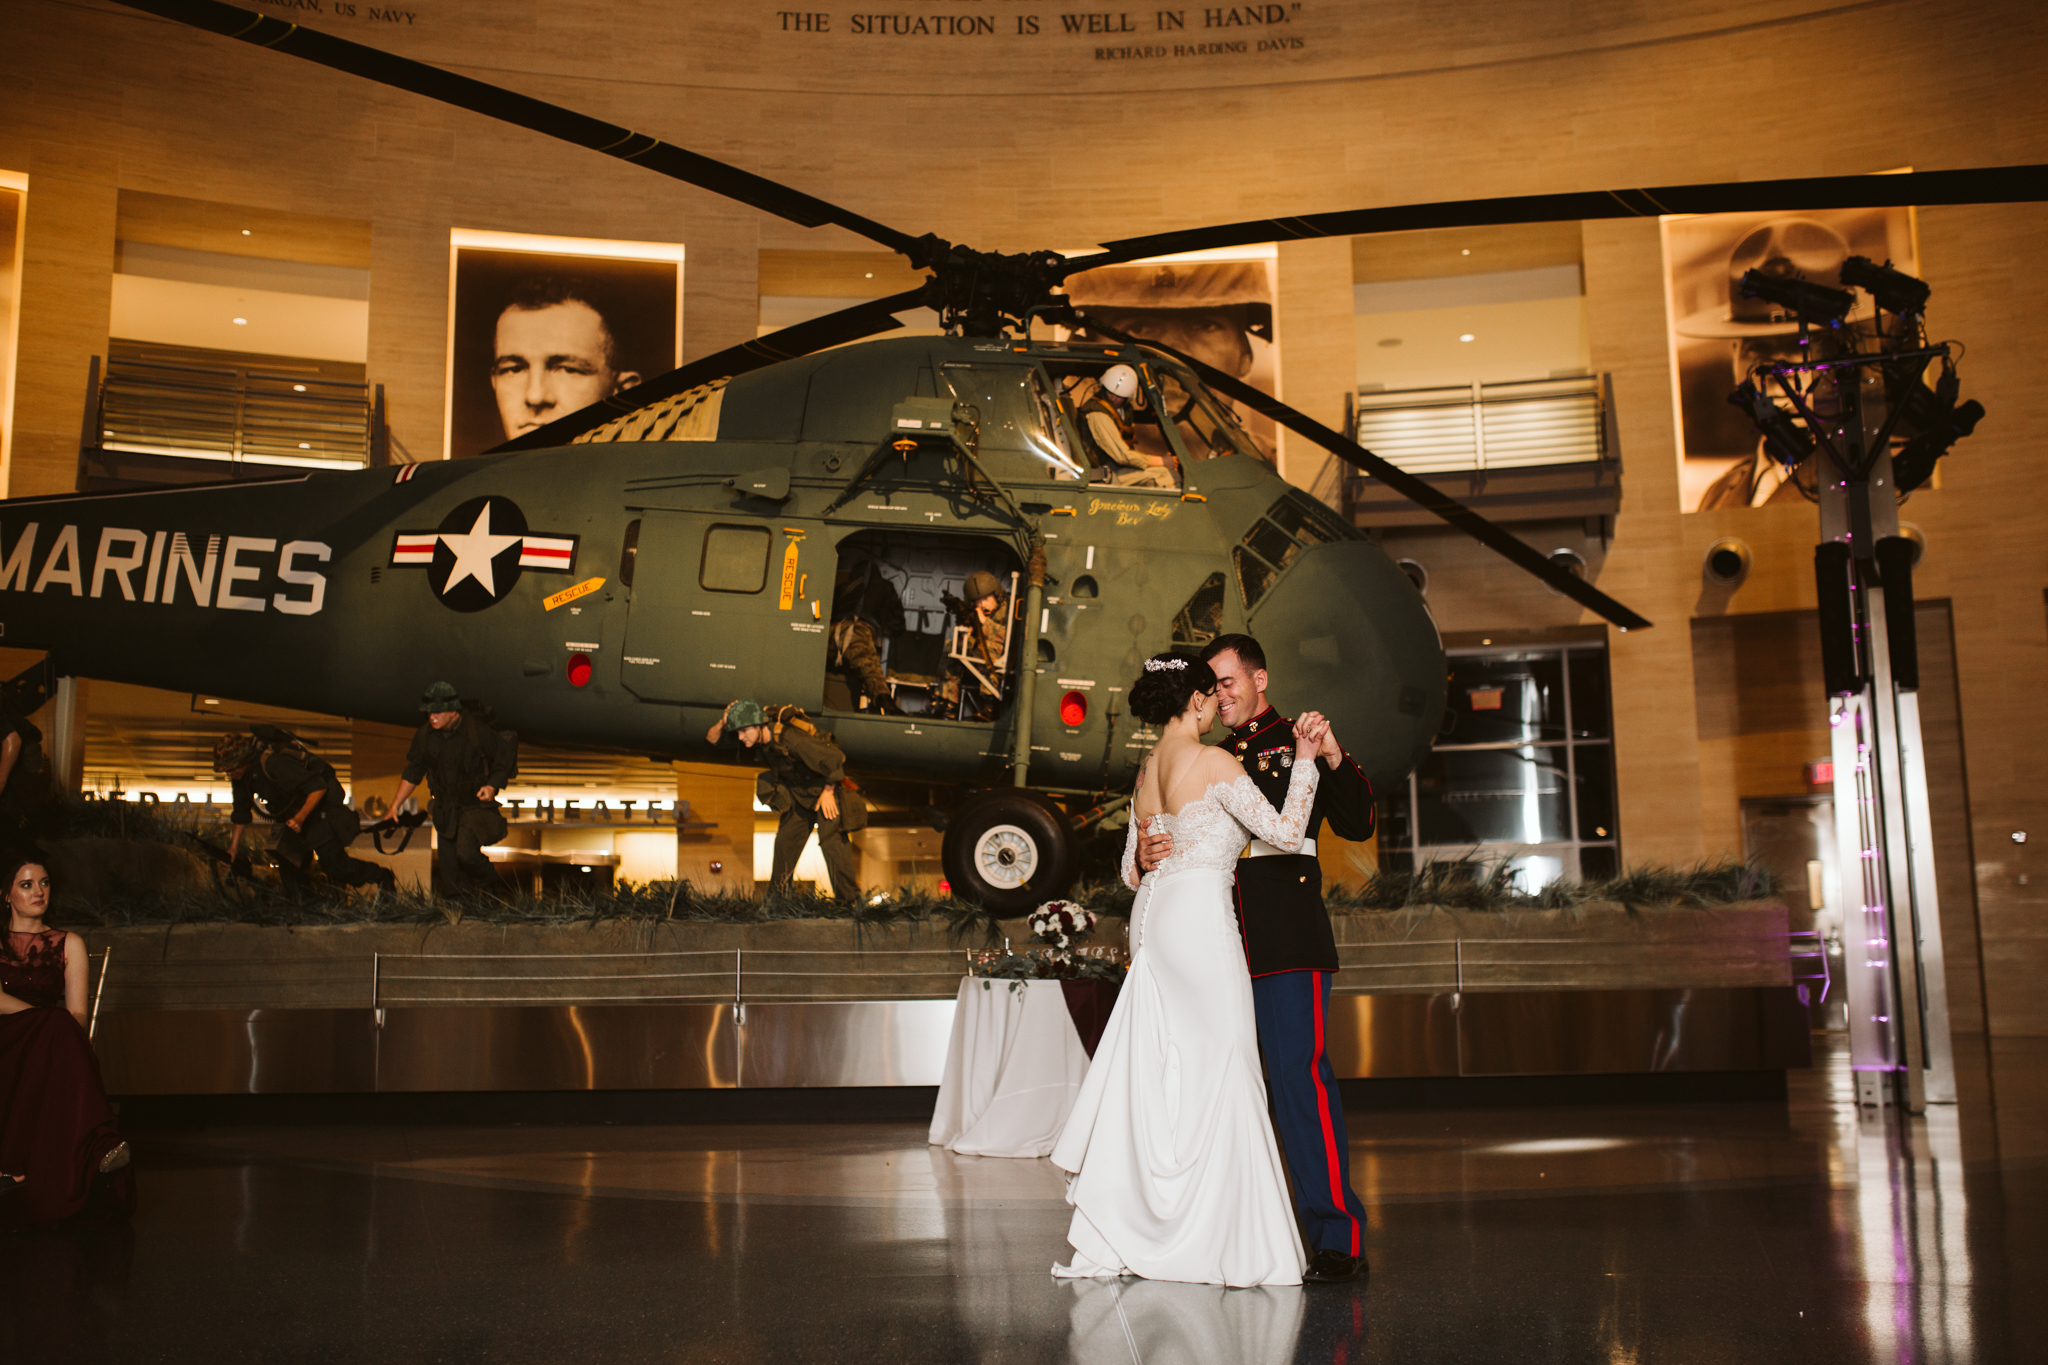 solinsky_wedding_national_museum_of_marine_corp-34.jpg